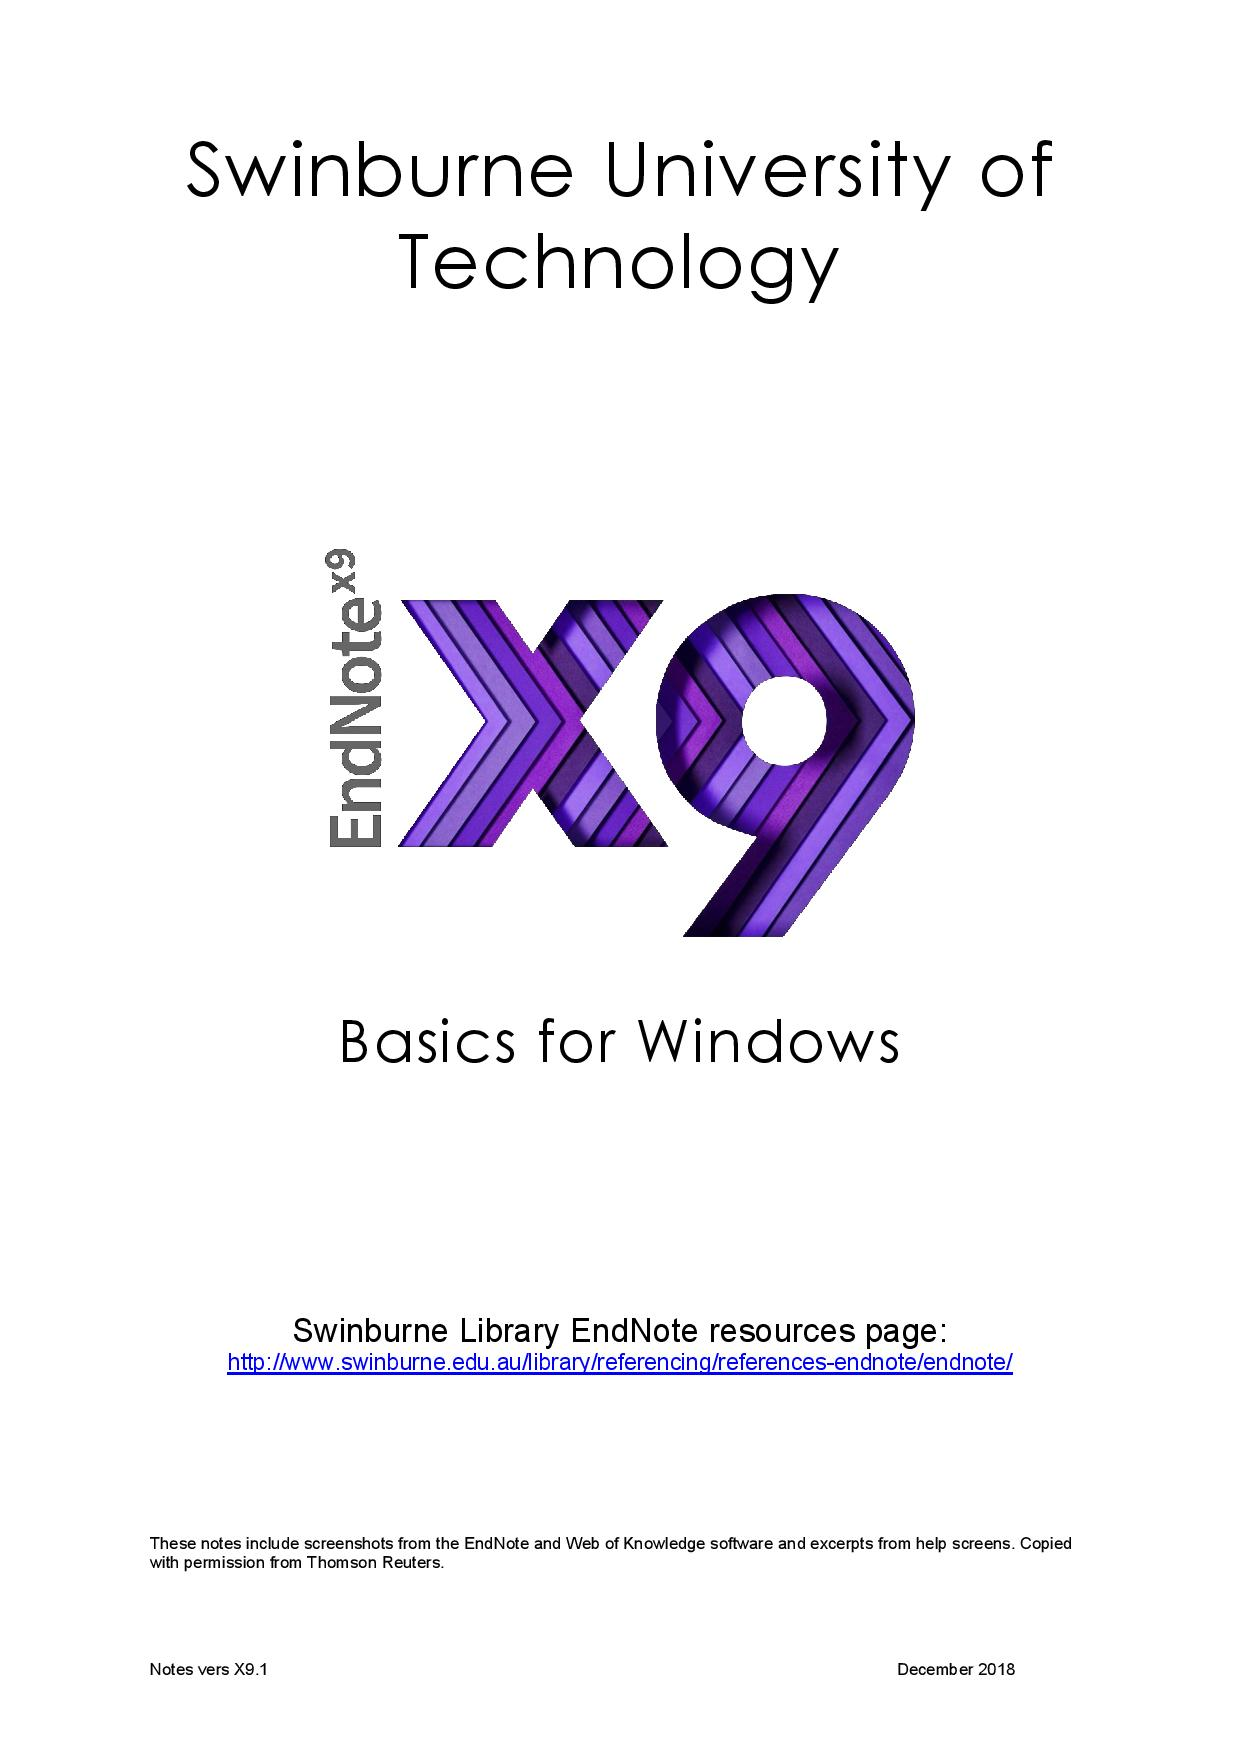 Swinburne Guide to EndNote for desktop (Windows)